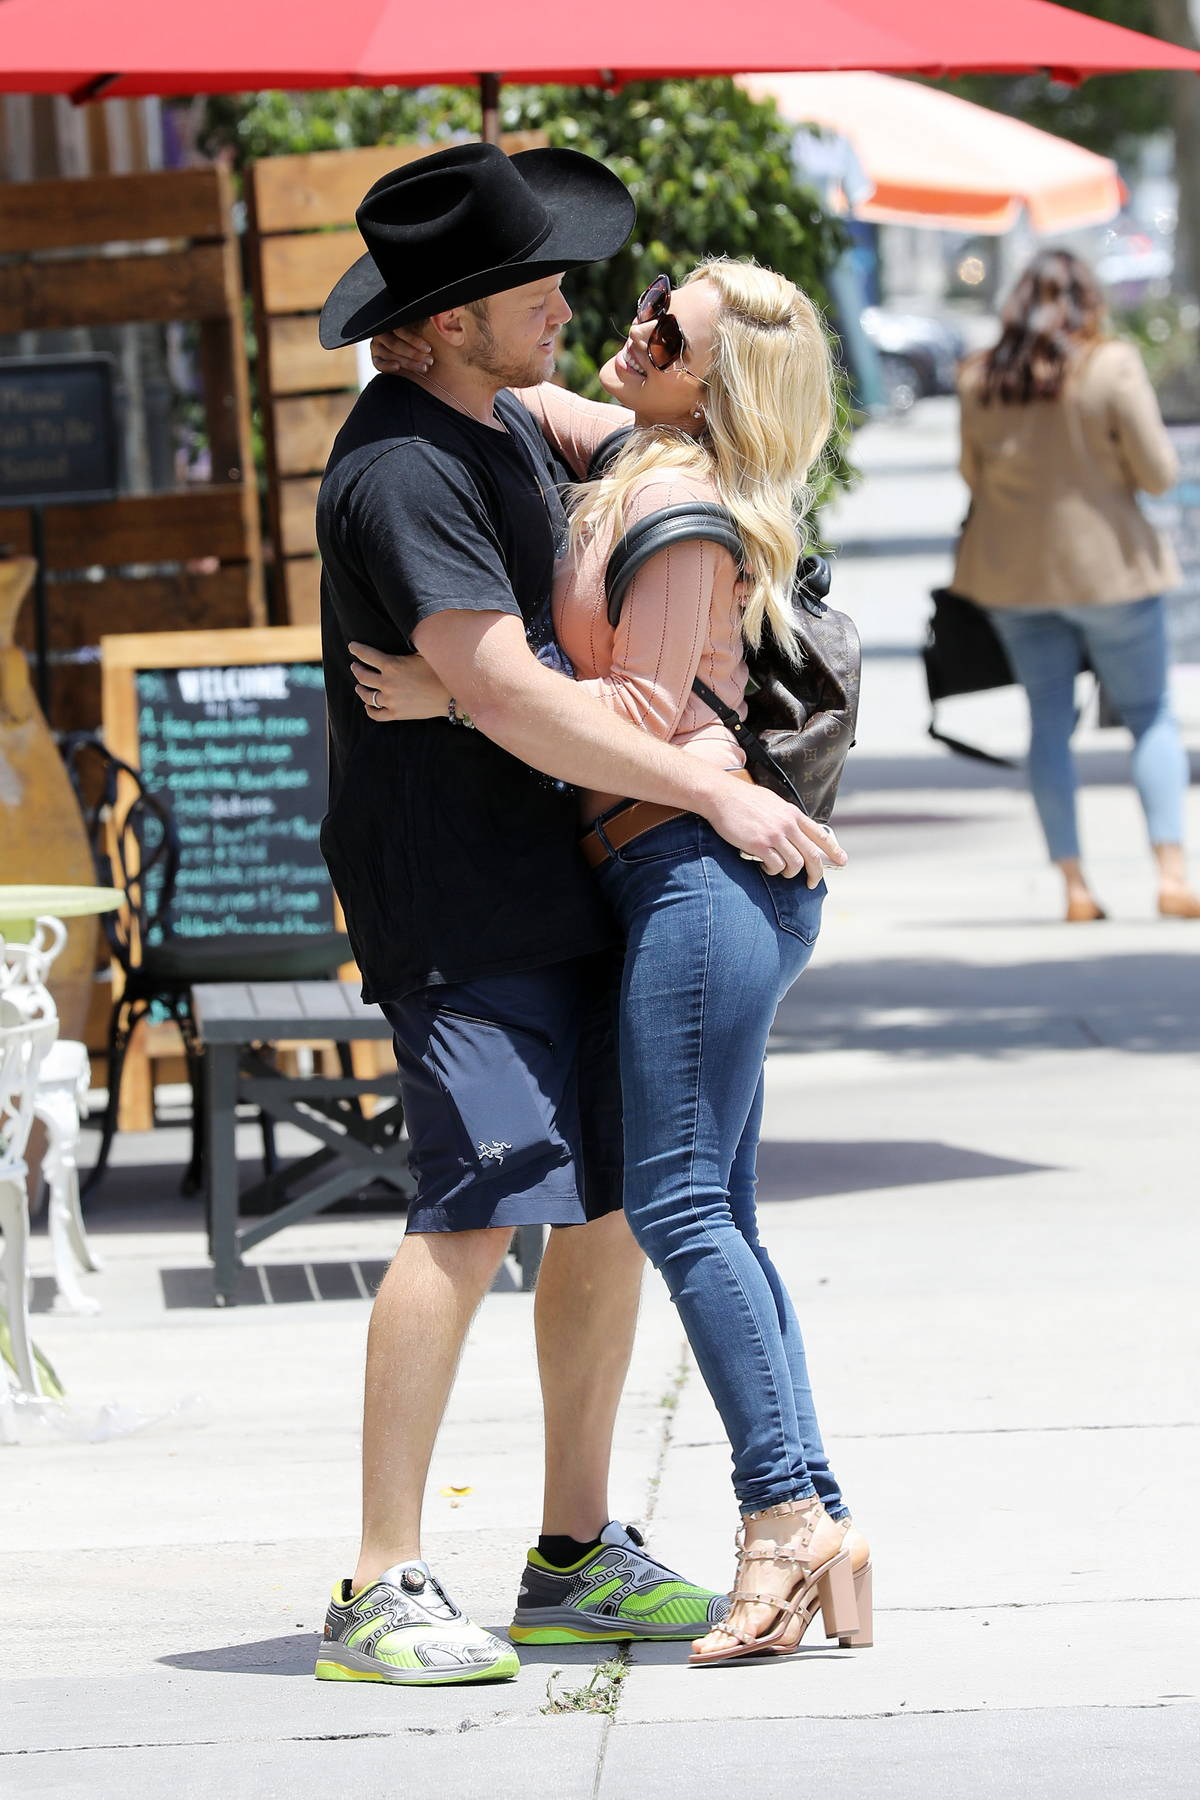 Heidi Montag and Spencer Pratt pack on the PDA while out for lunch at Don Antonio's Restaurant in Los Angeles